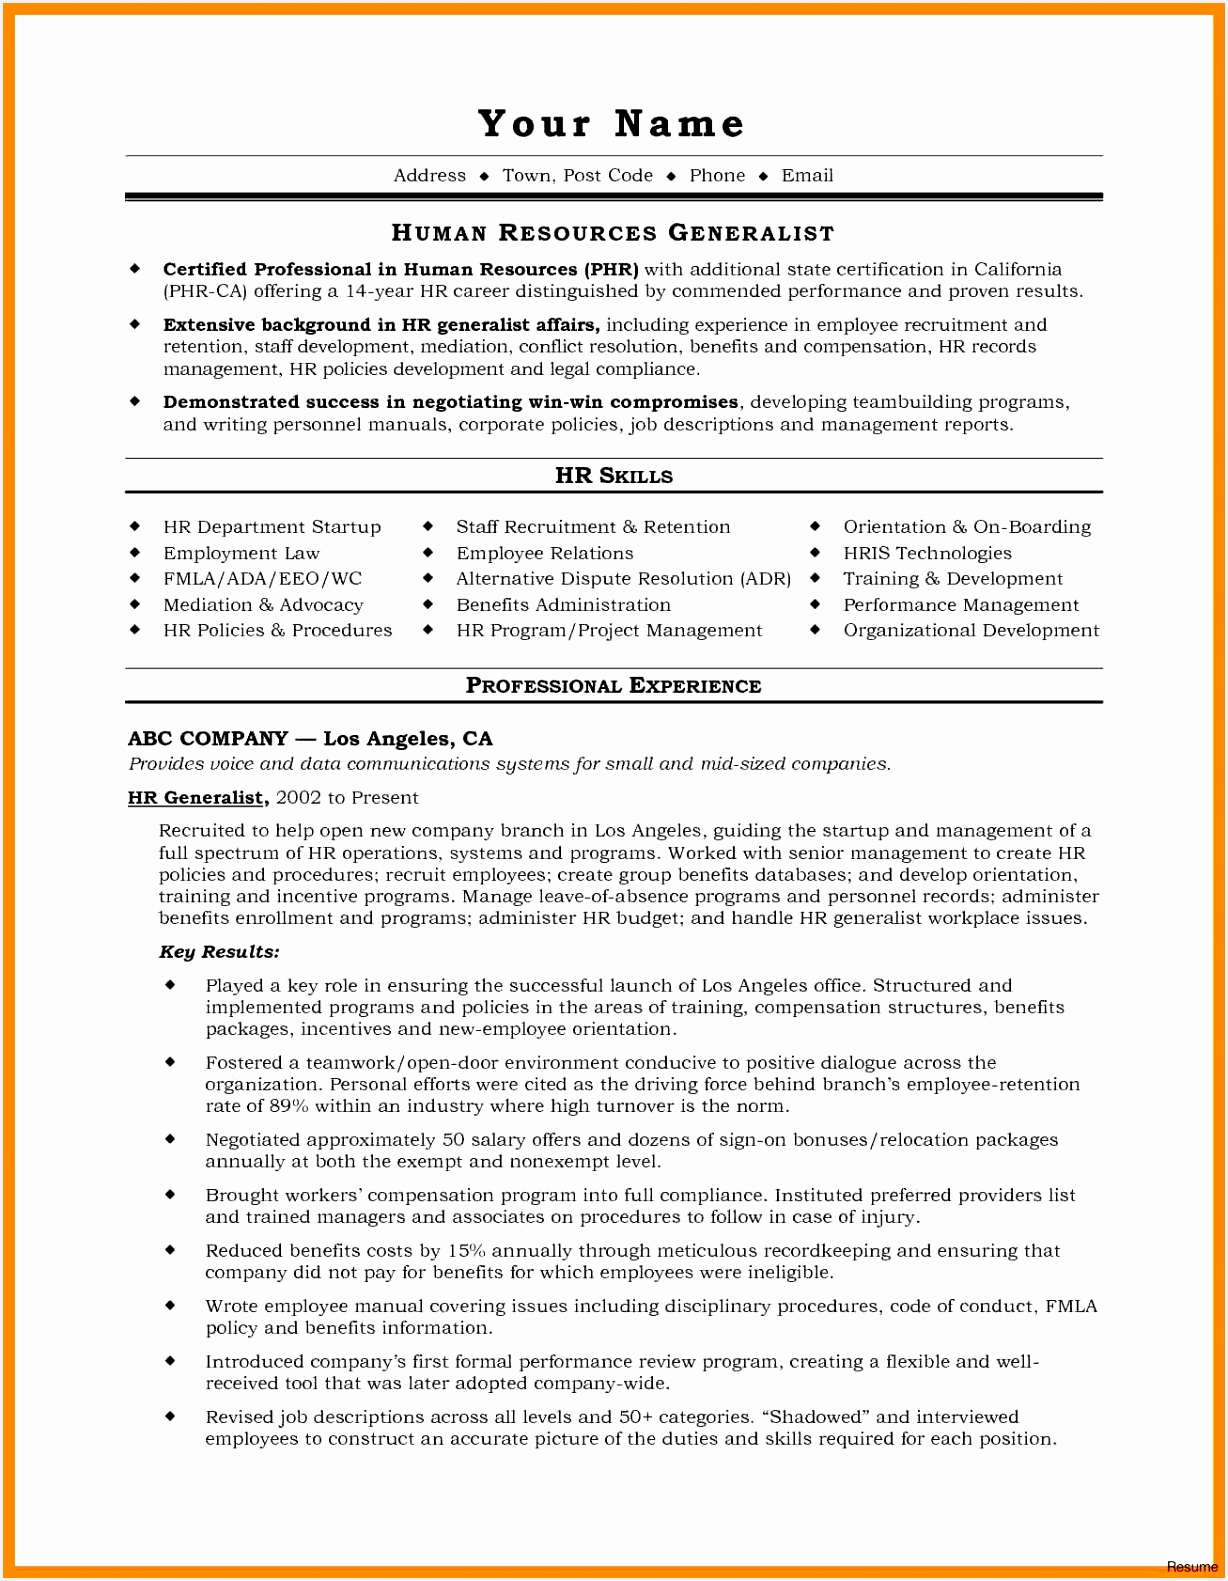 Microsoft Trainer Sample Resume Iqqds Awesome Microsoft Word Resume Templates 2017 Lovely Sample Resume Word File Of Microsoft Trainer Sample Resume Vjdoe Unique Sample Pilot Resume – Microsoft Dynamics Ax Sample Resume Archives